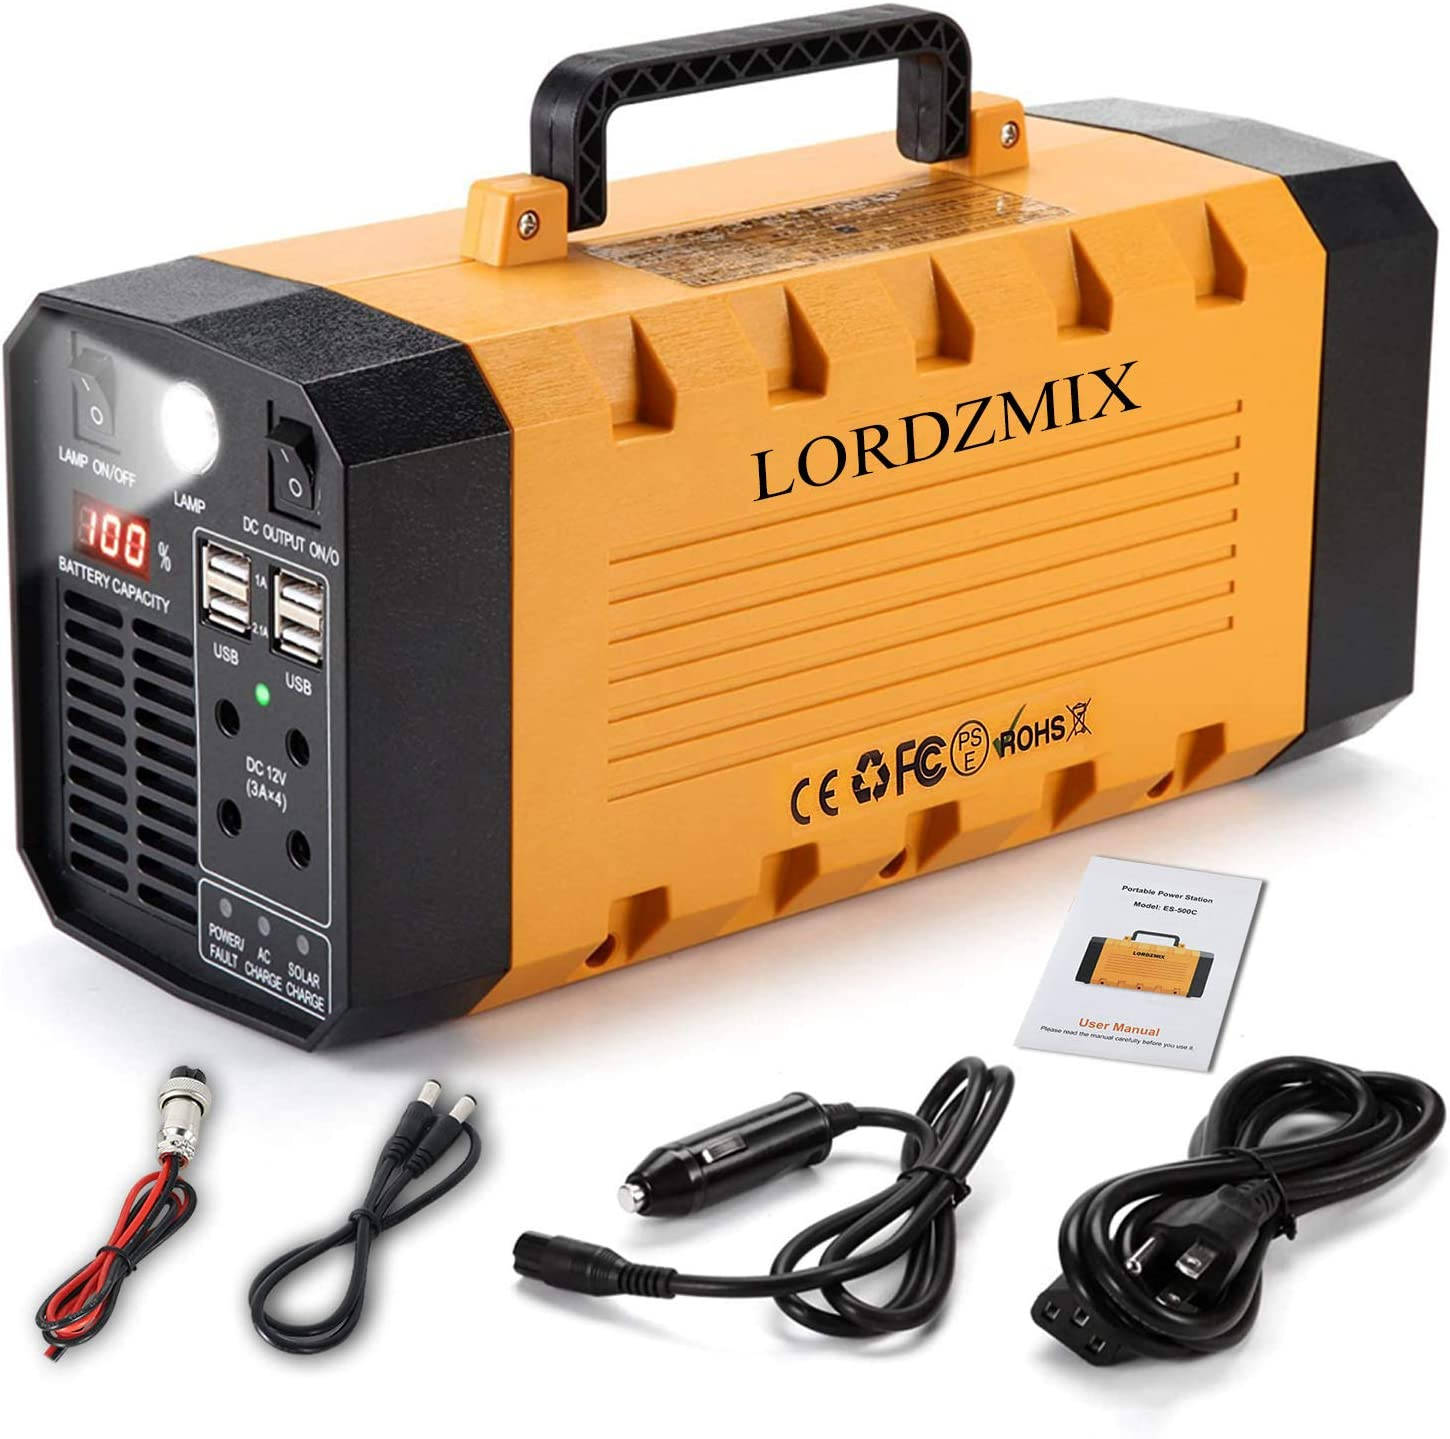 Portable Power Station 500W,Generator 288Wh Backup CAPA,Solar Power Station,110V Solar Generator for Home Use,Portable Generator with LED Flashlight AC Outlet for Outdoor Camping Road Trip Emergency